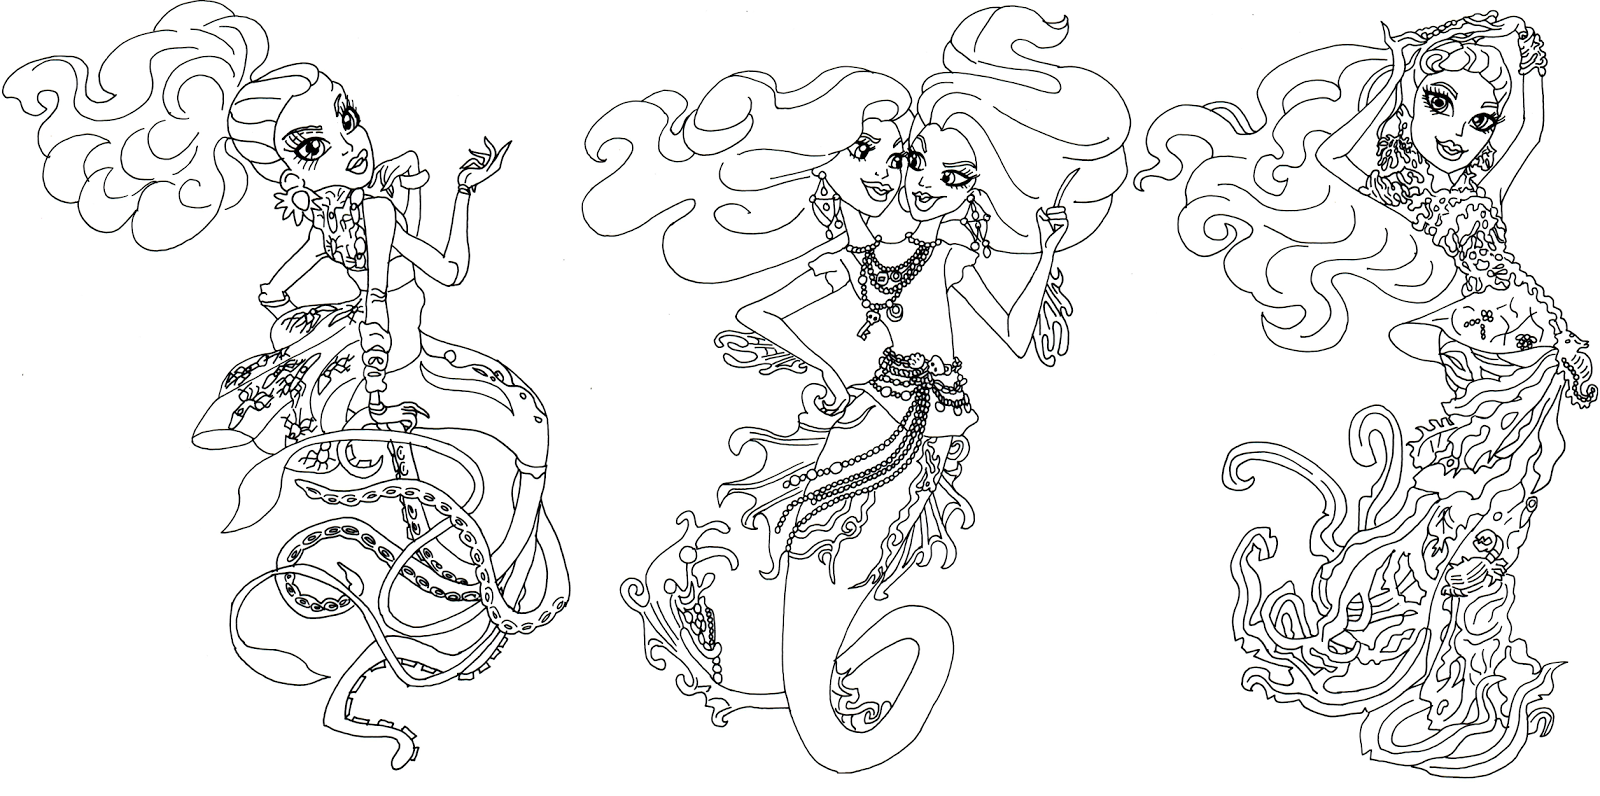 greatscarrierreefmonsterhighcoloringpagepng - Free Printable Coloring Pages Monster High